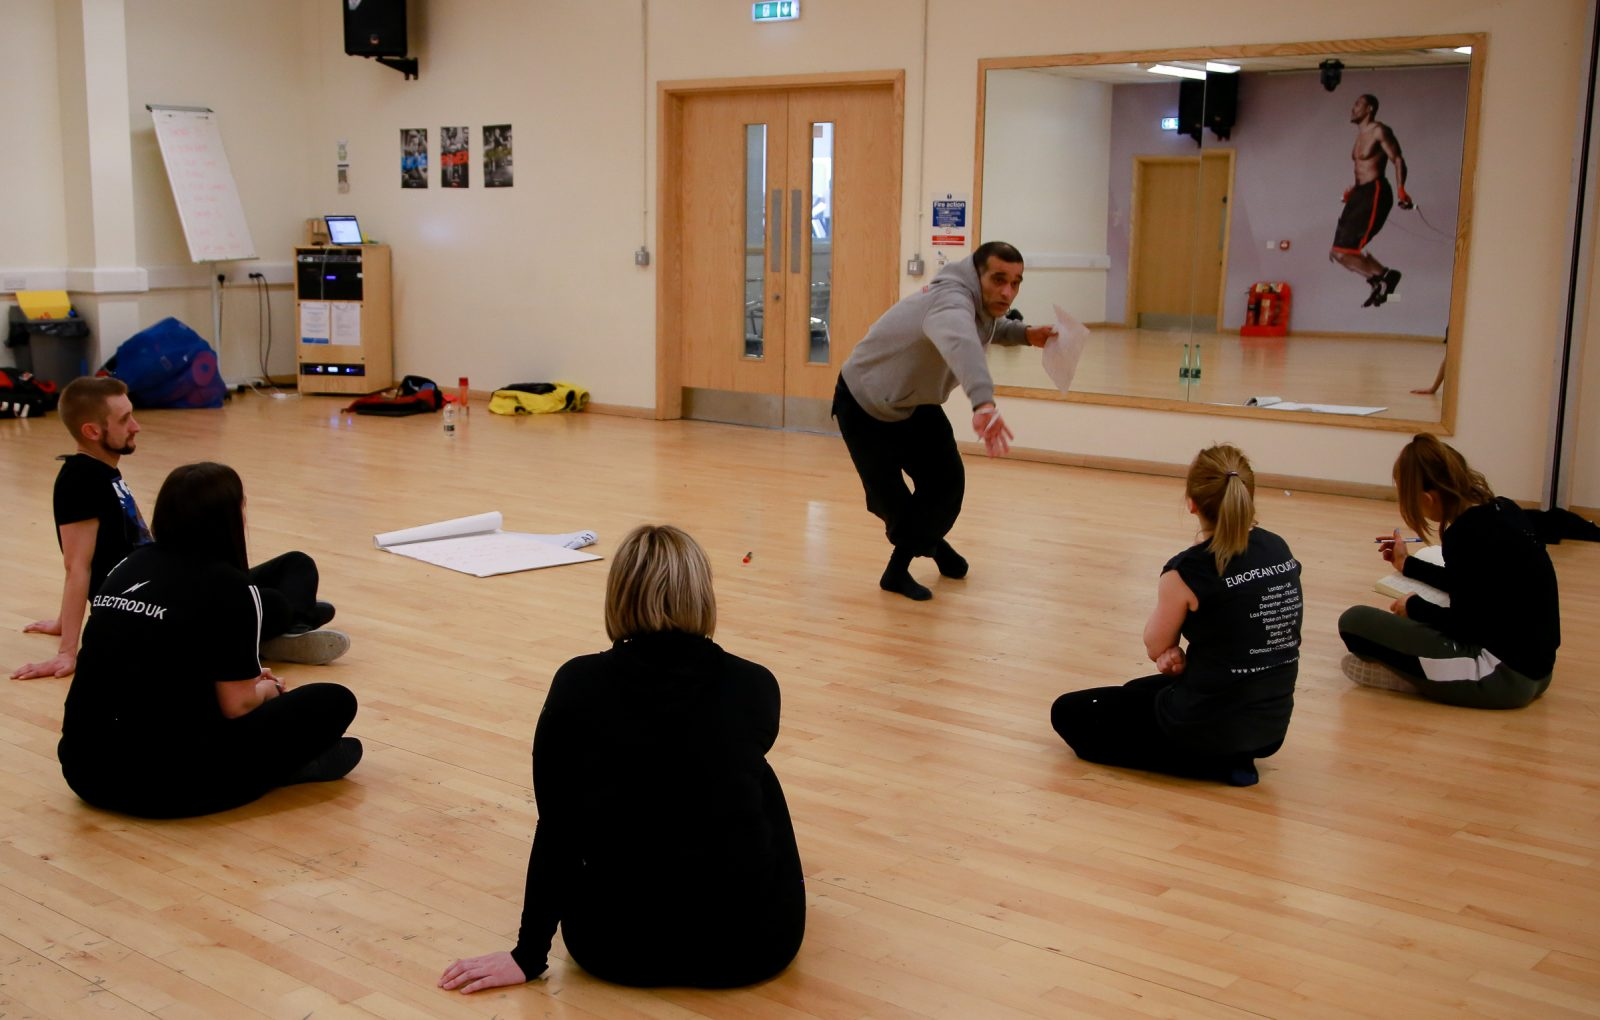 Creative dance workshop inspires Rugby League club foundations